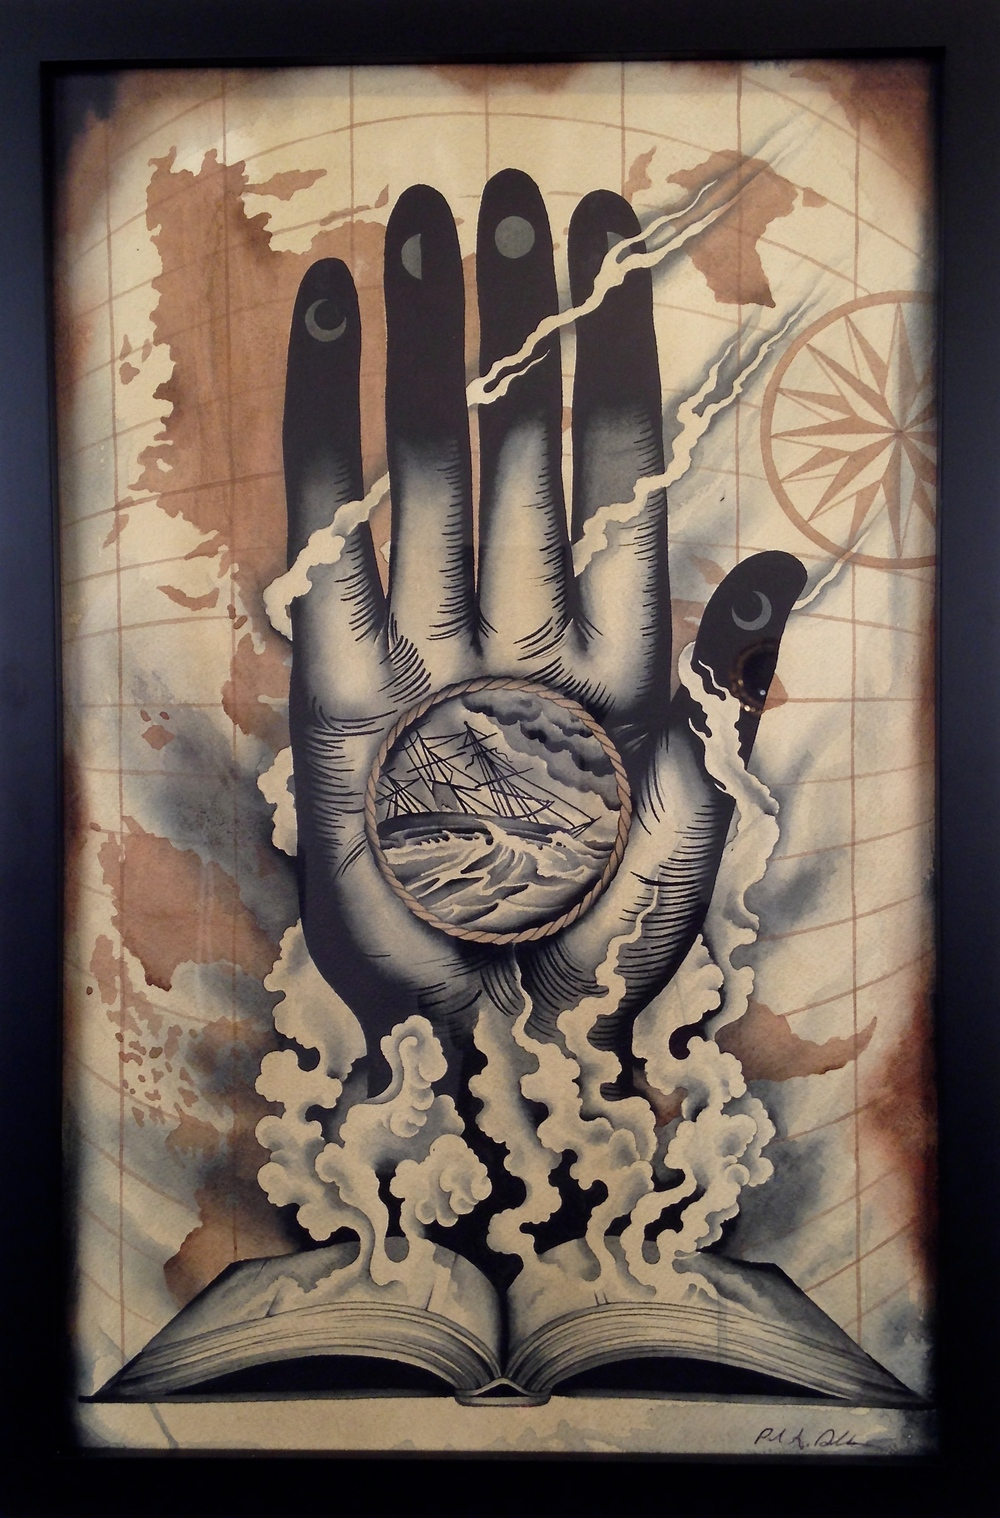 """Hand of Fate"" by P. Dobleman Watercolor on paper 18 in. x 12 in. framed $700"